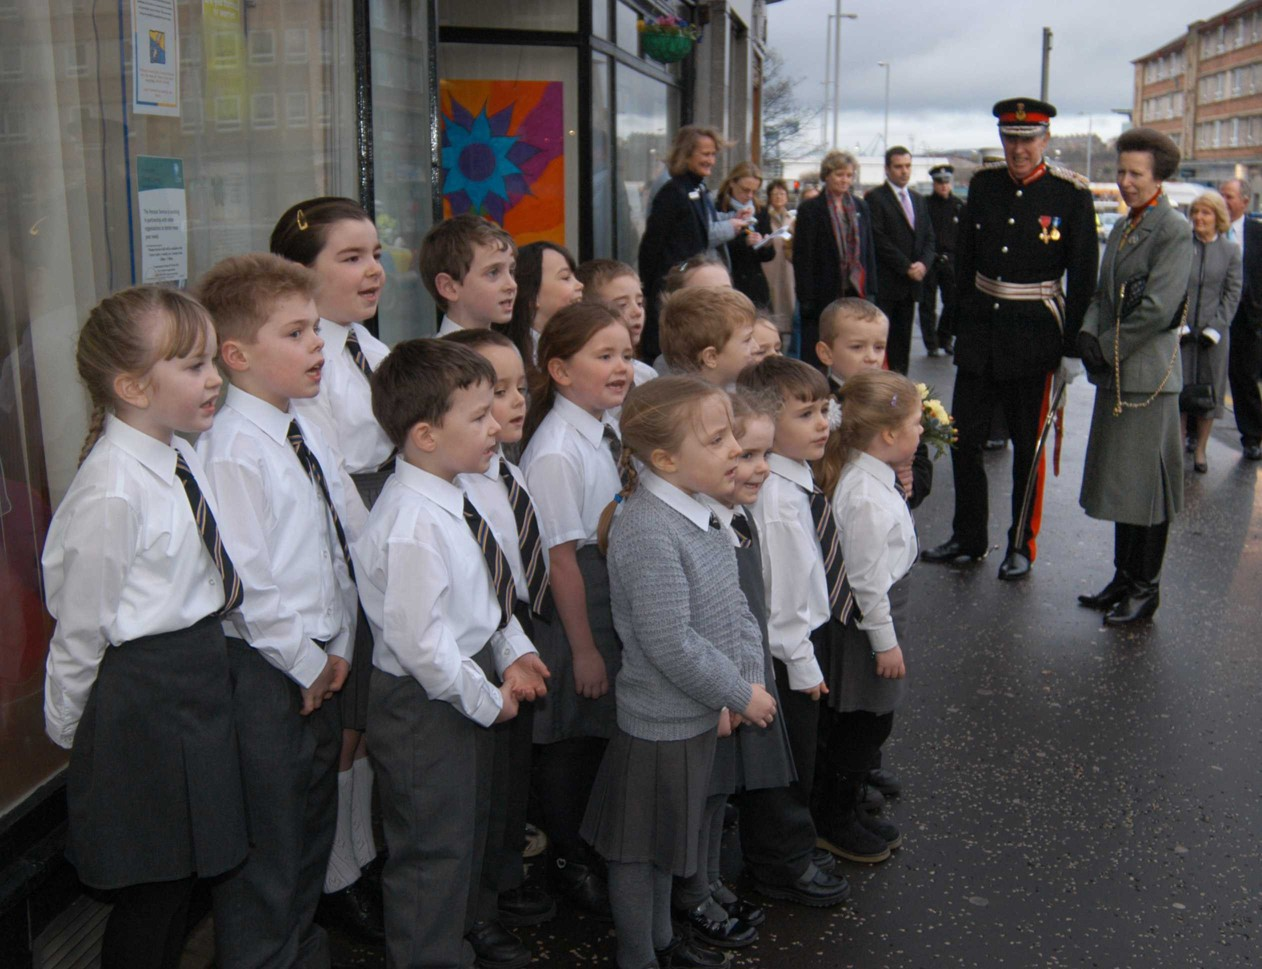 Princess Anne with Kids from Inverclyde primary school